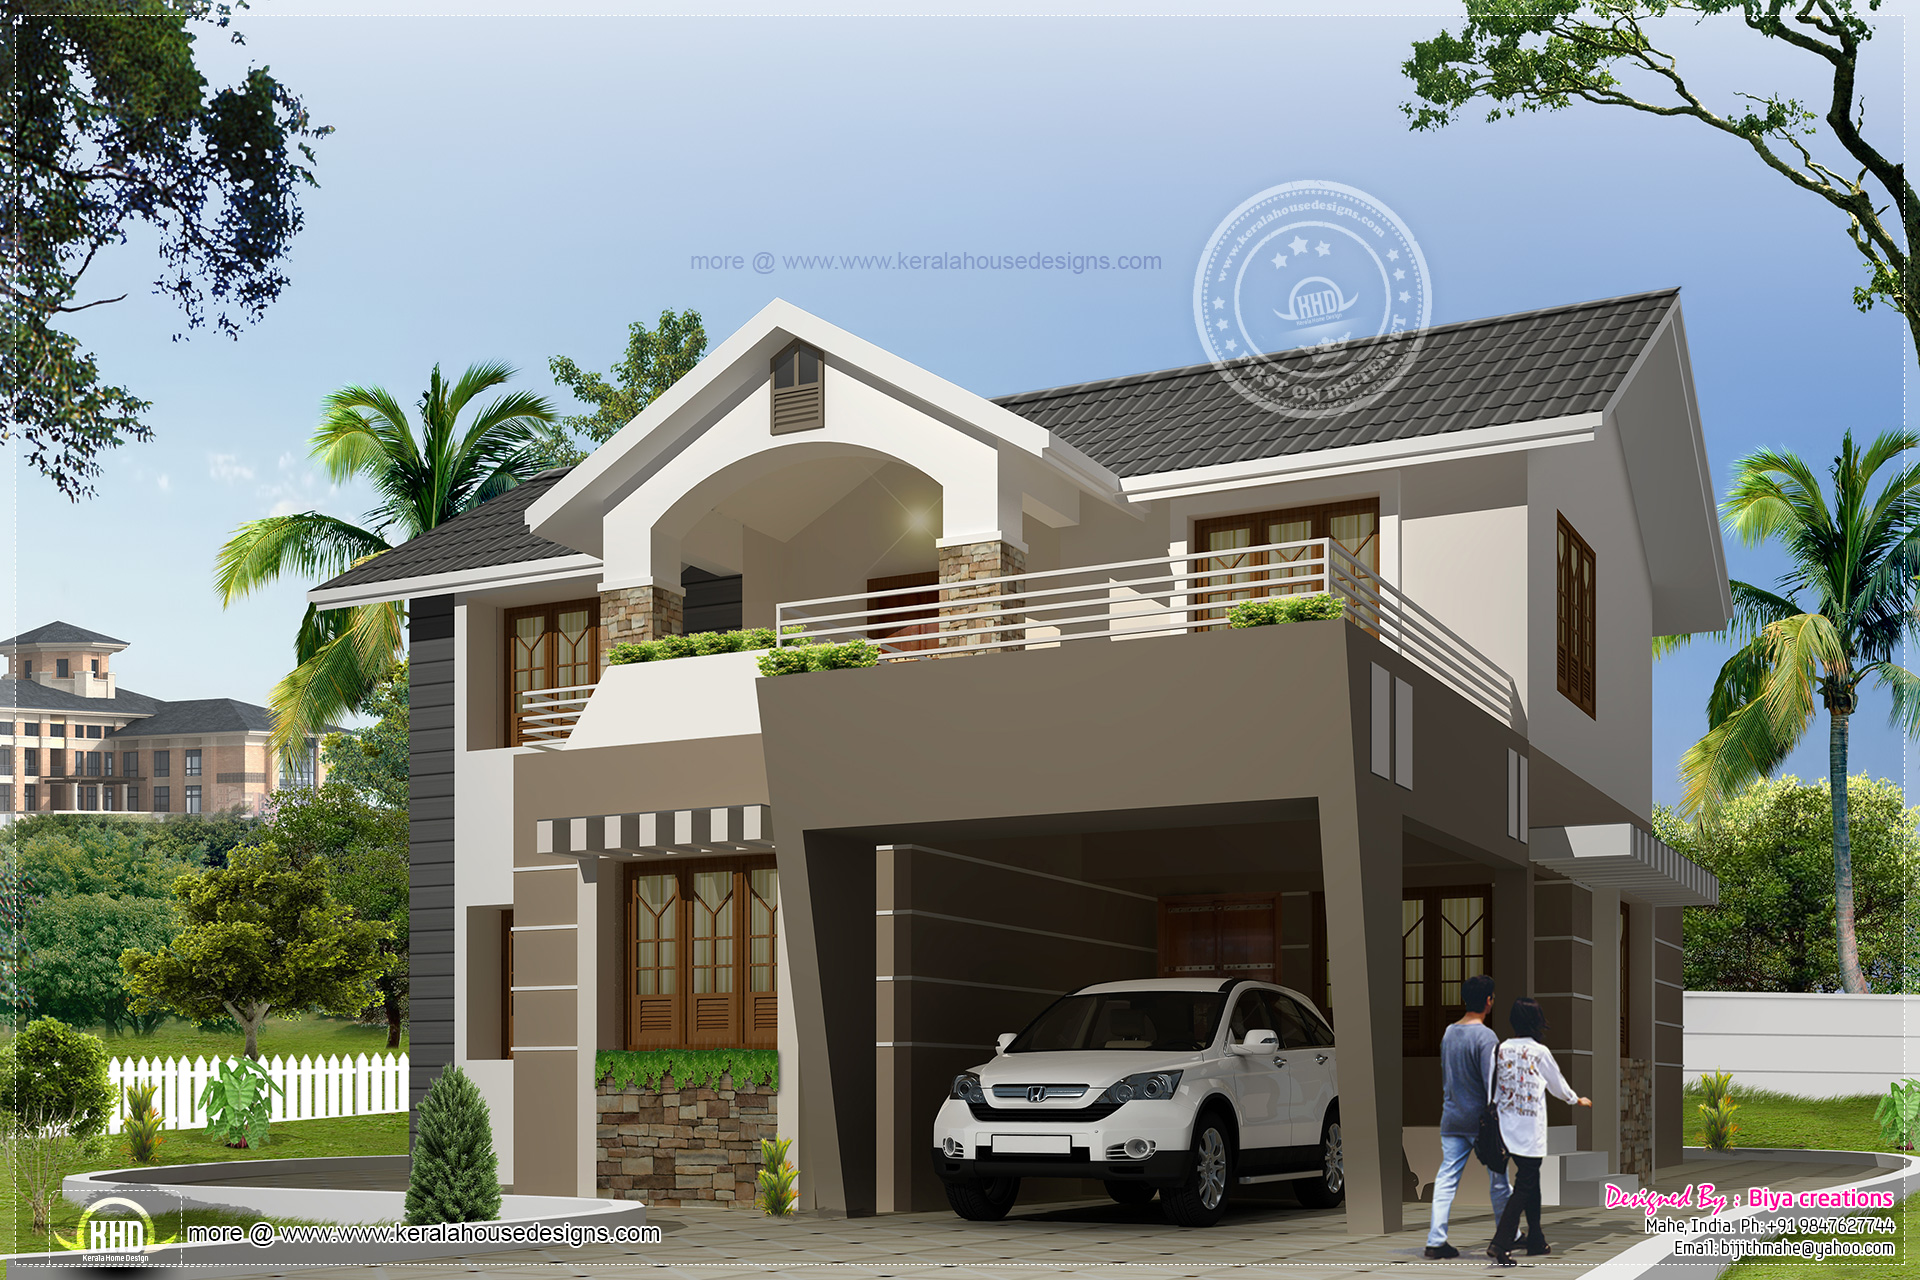 2050 modern exterior home kerala home design and for Indian home design photos exterior